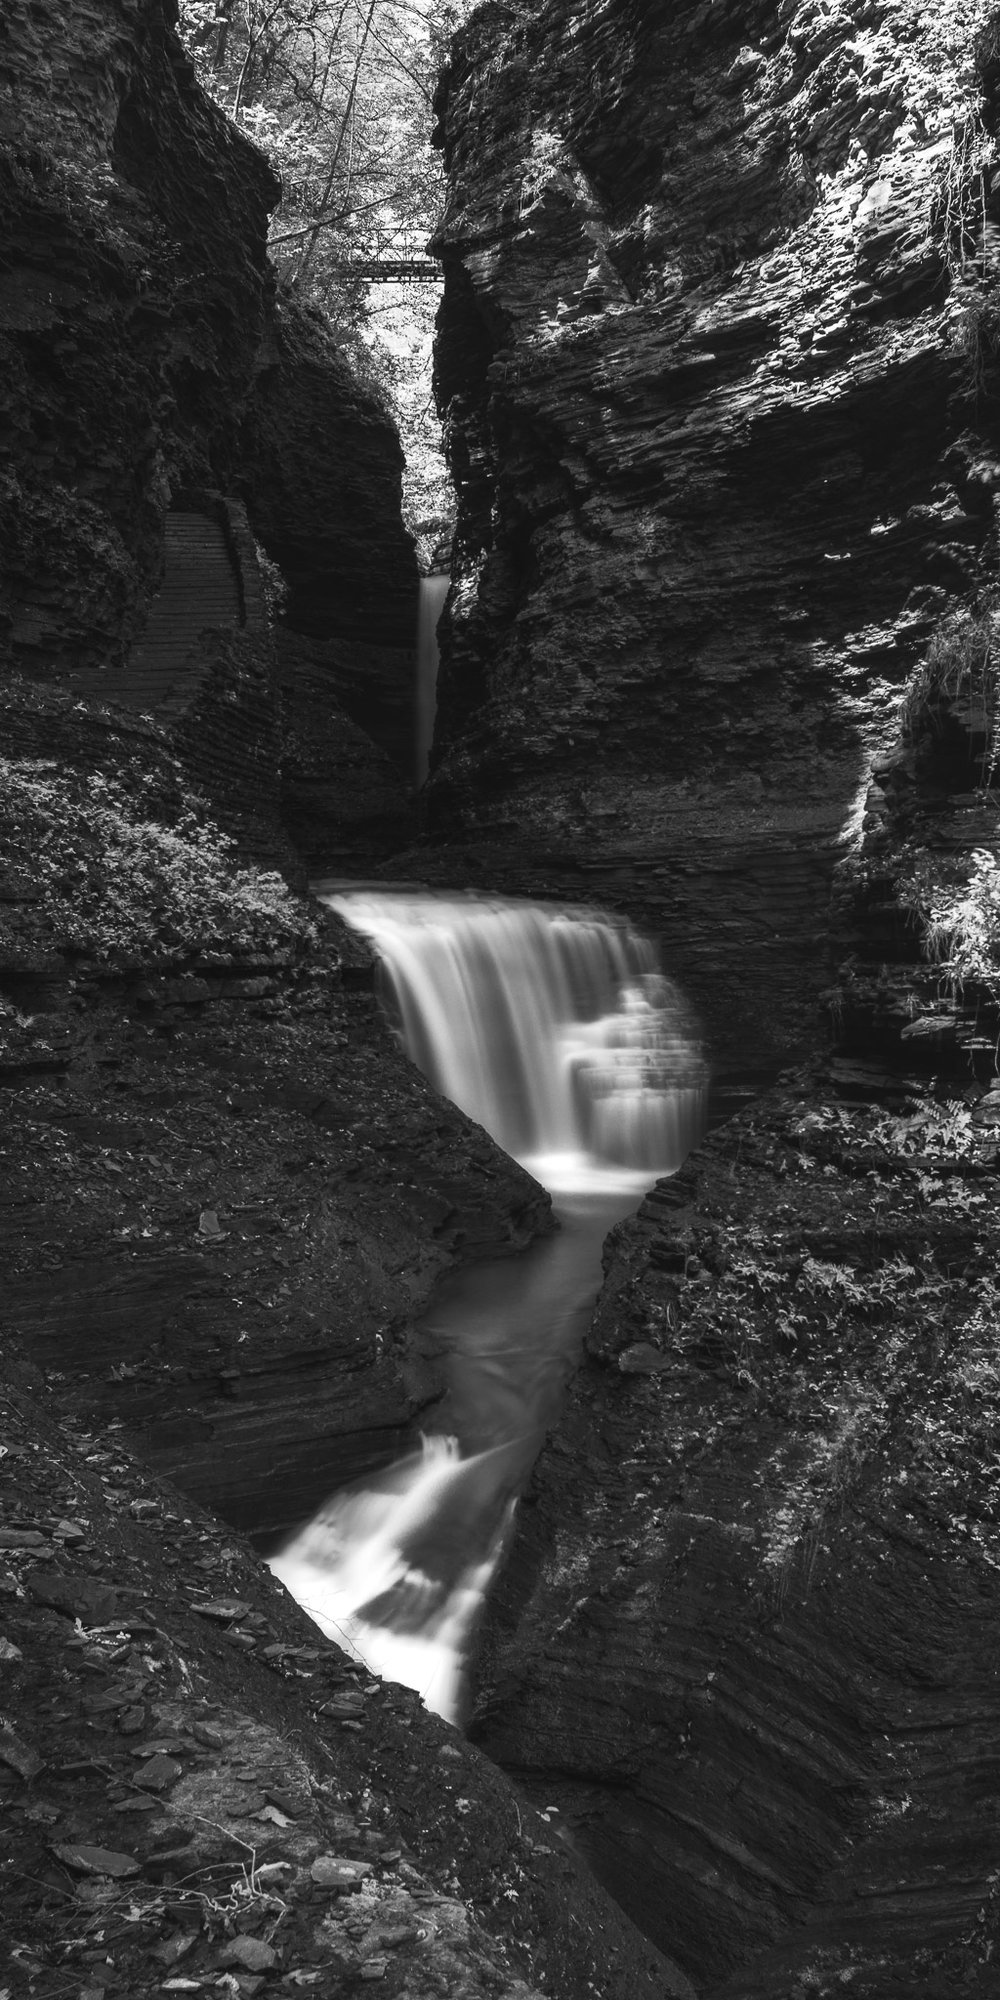 A black and white photograph by fine artist Cody Schultz, Watkins Glen is a vertical panorama, one of the first by the artist. The scene shows a grouping of waterfalls, hidden by the rock walls that frame it on either side. Near the top of the frame stands a bridge that connects either side of the walls; toward the left of the frame is a rock staircase with no sign of people, a rare sight for such a popular destination.